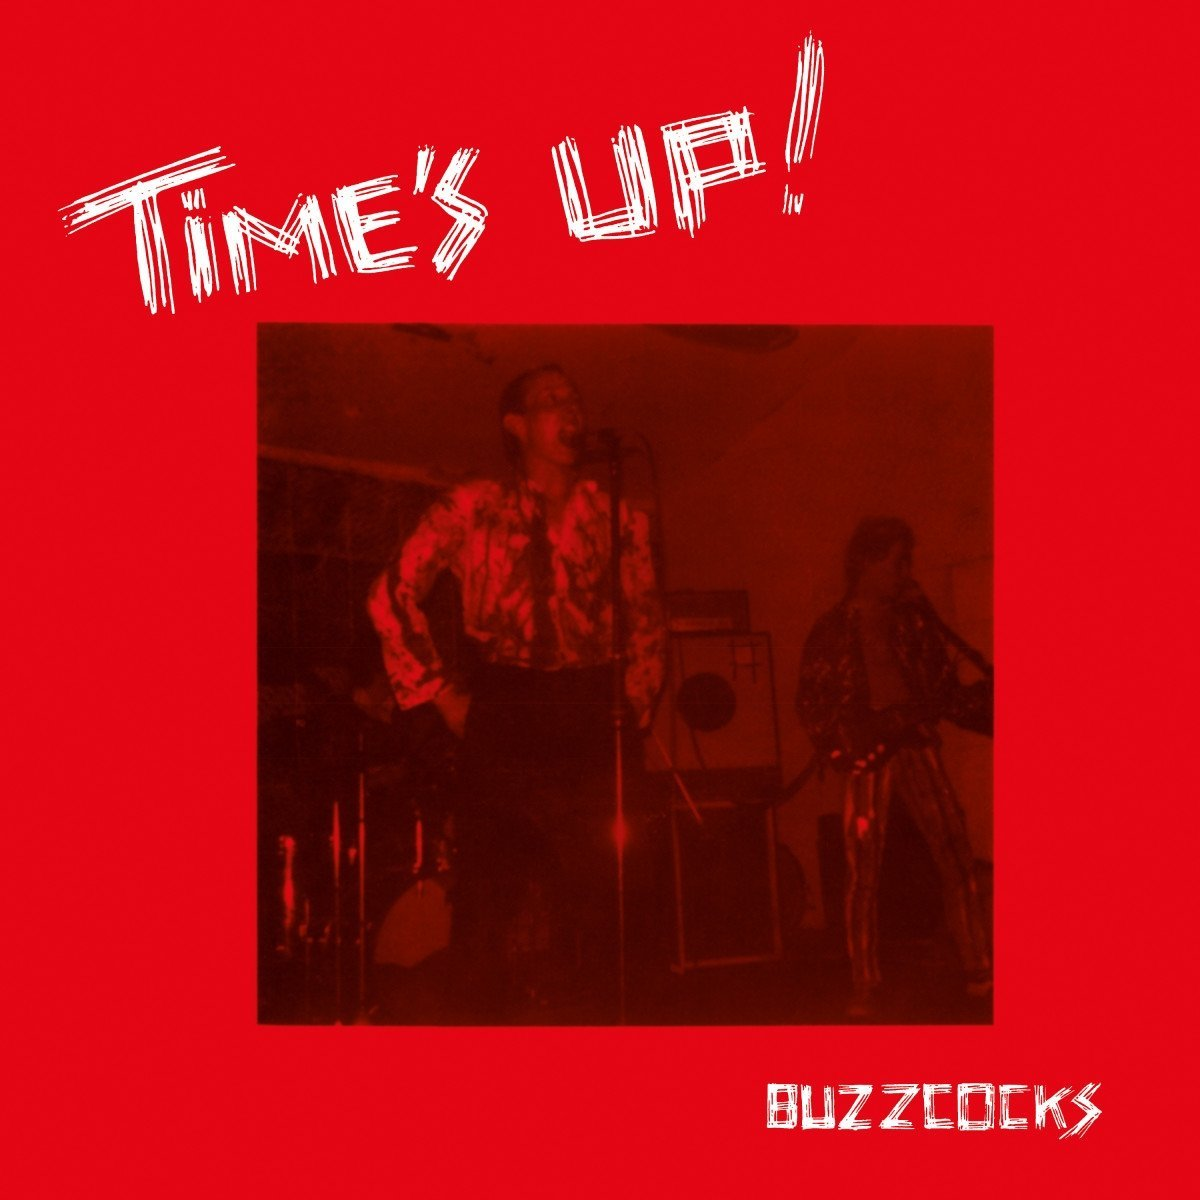 Copertina Vinile 33 giri Time's Up di Buzzcocks